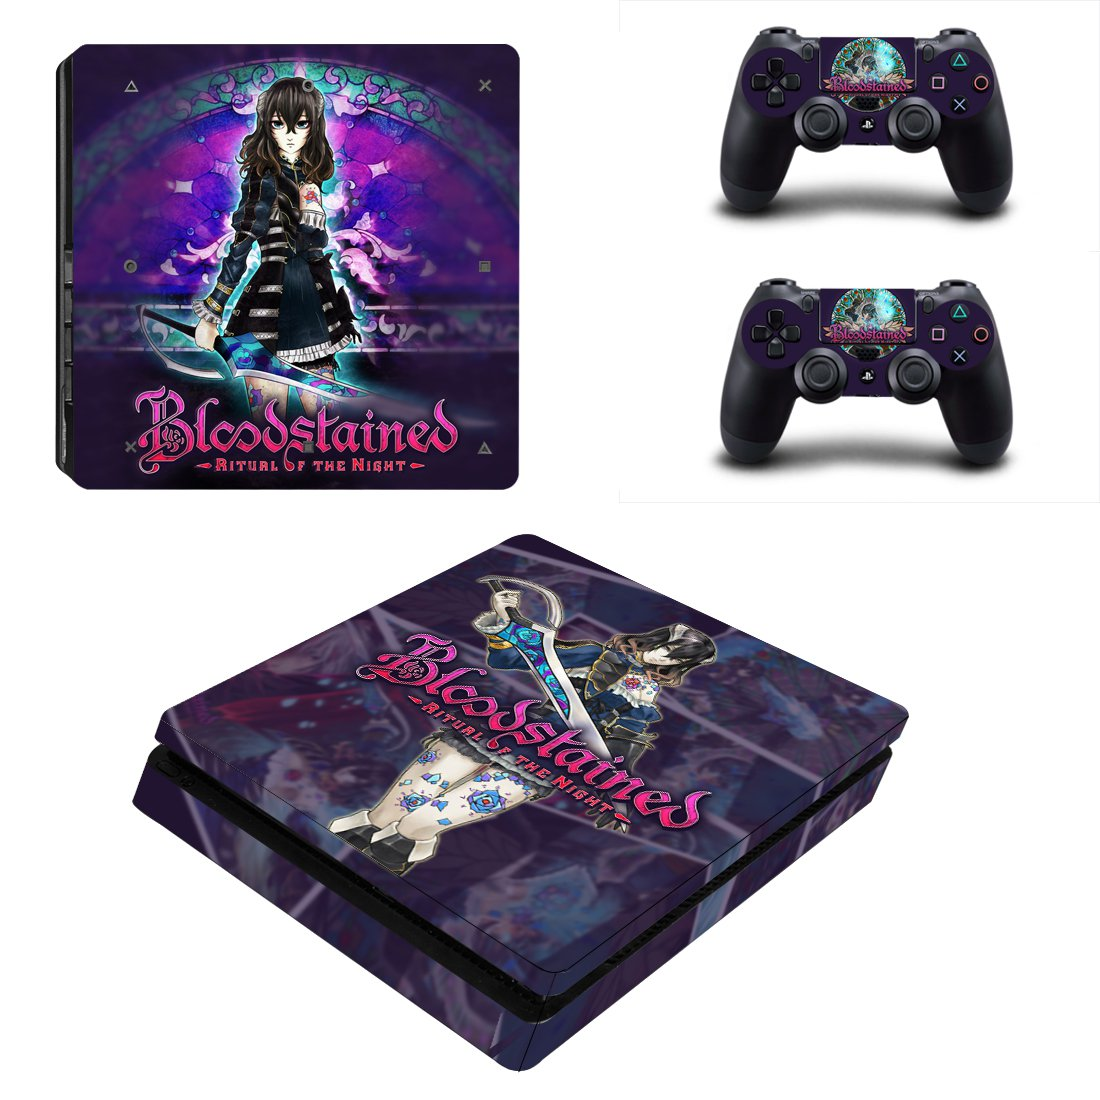 Bloodstained PS4 Slim Skin Sticker Decals PS4 Console And Controllers Protect Your PS4